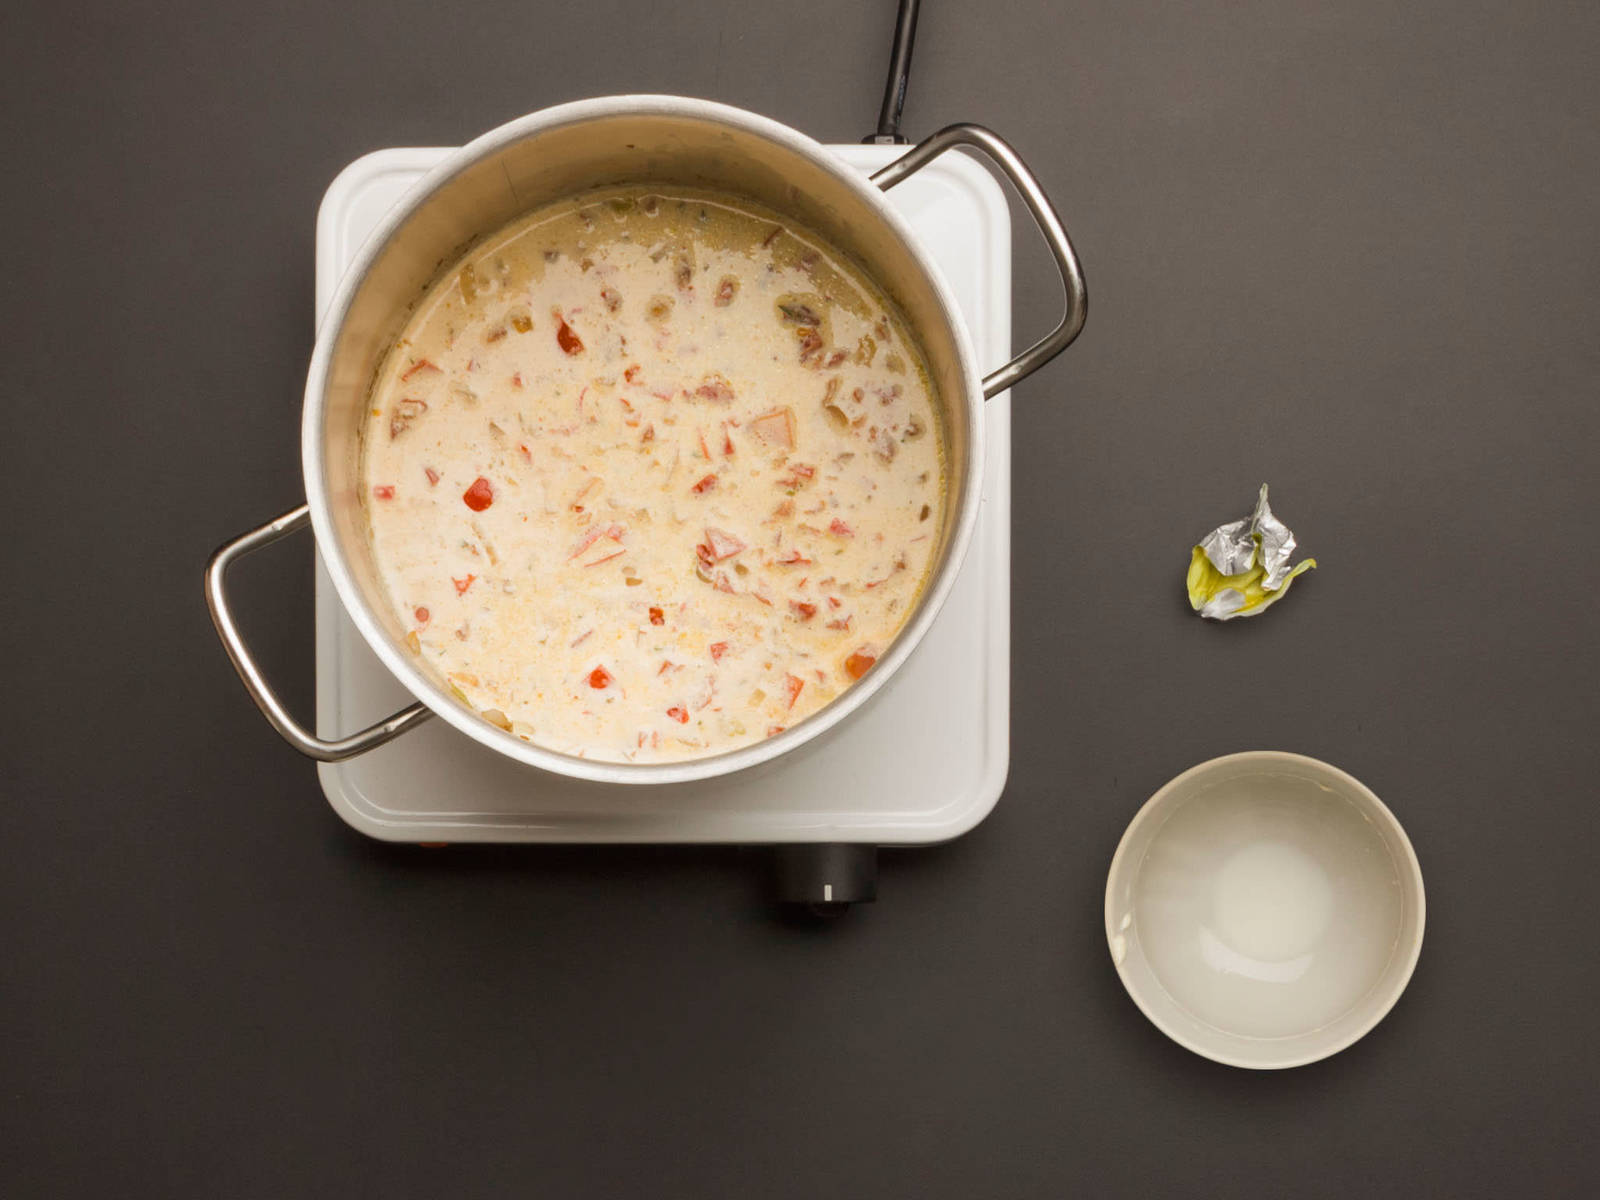 Add cream and bouillon to first pan, bring to a boil for approx. 1 – 2 min., reduce heat, and continue to cook for another 10 min.